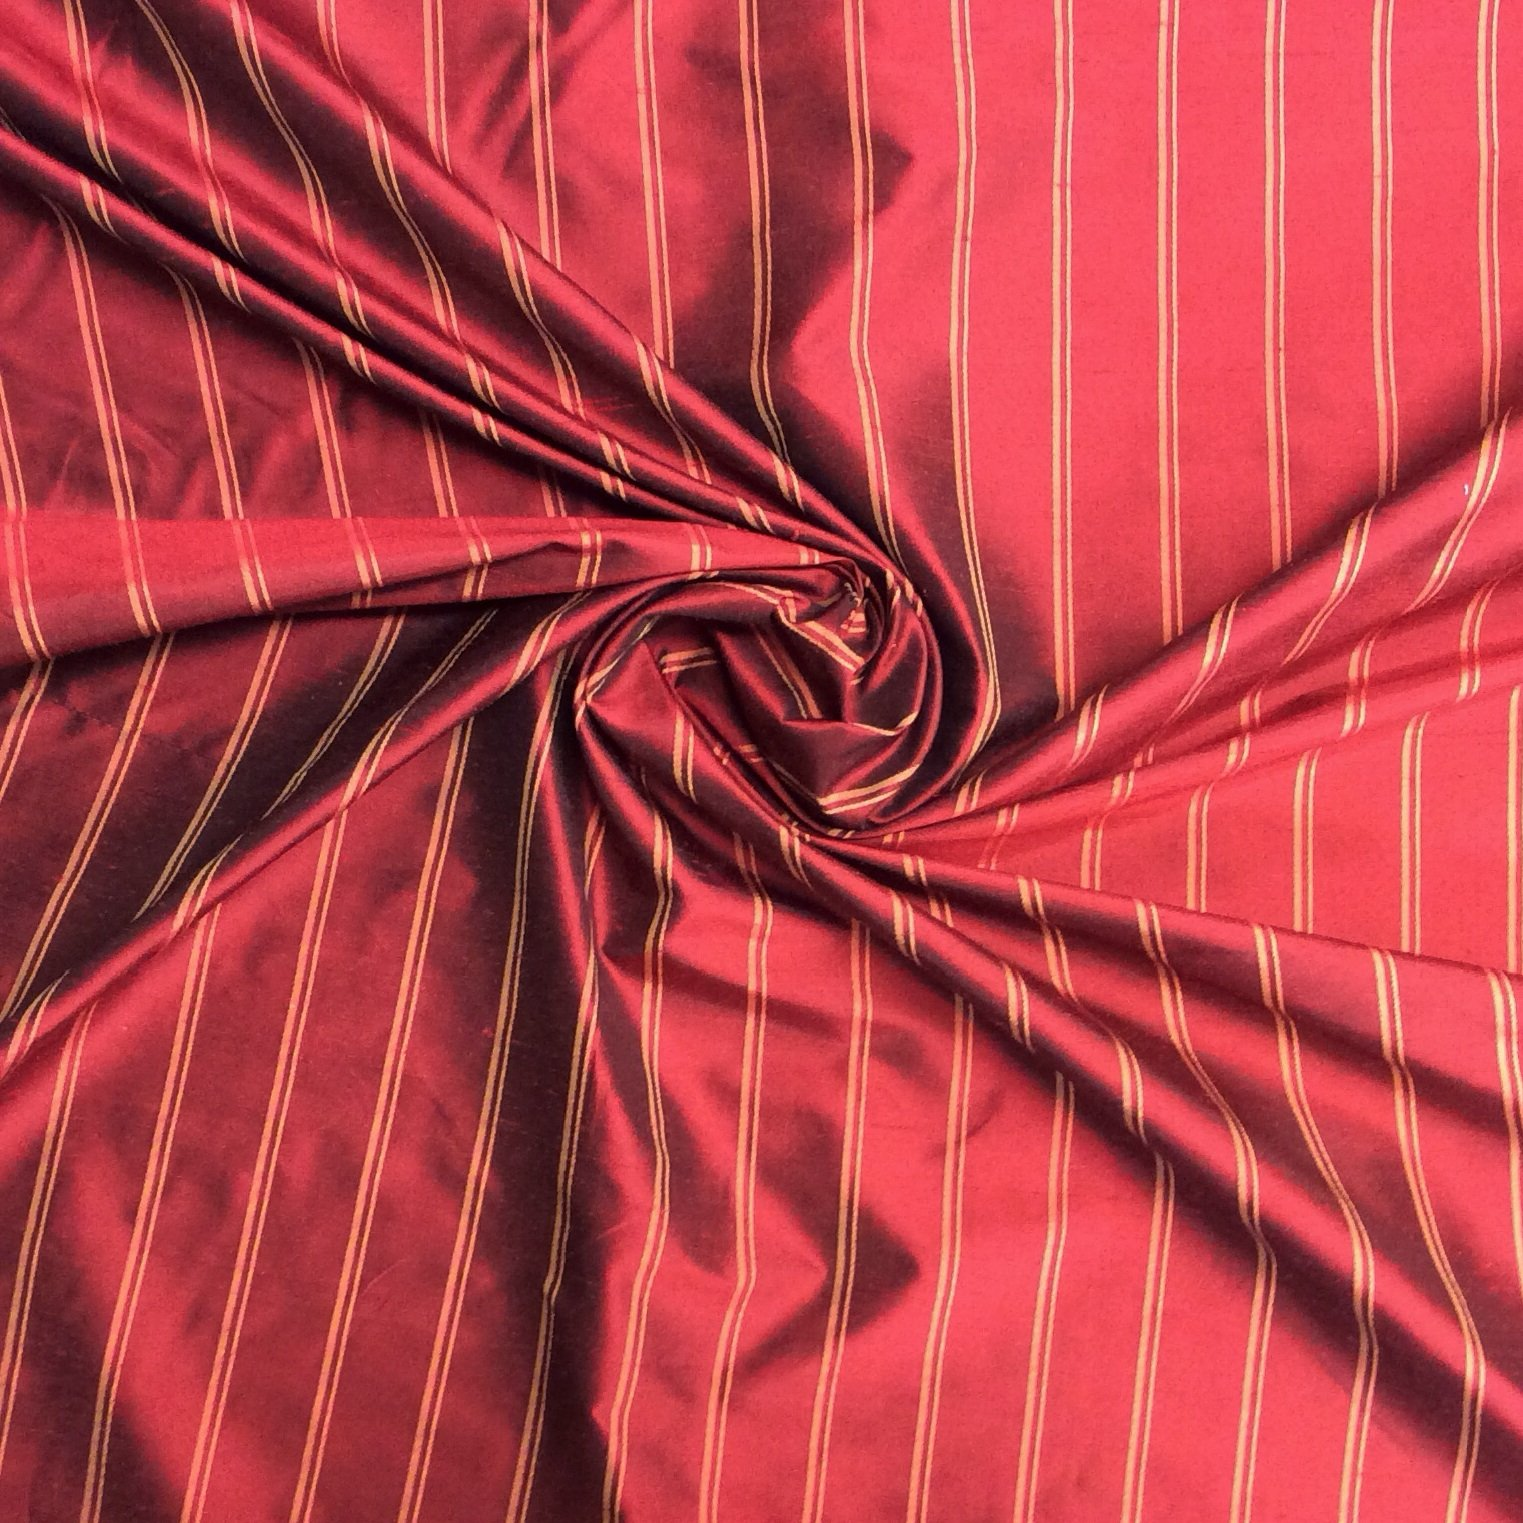 Pindler & Pindler Saumur Stripe Burgundy Gold Damask Silk Fabric PI06 Striped Fabric